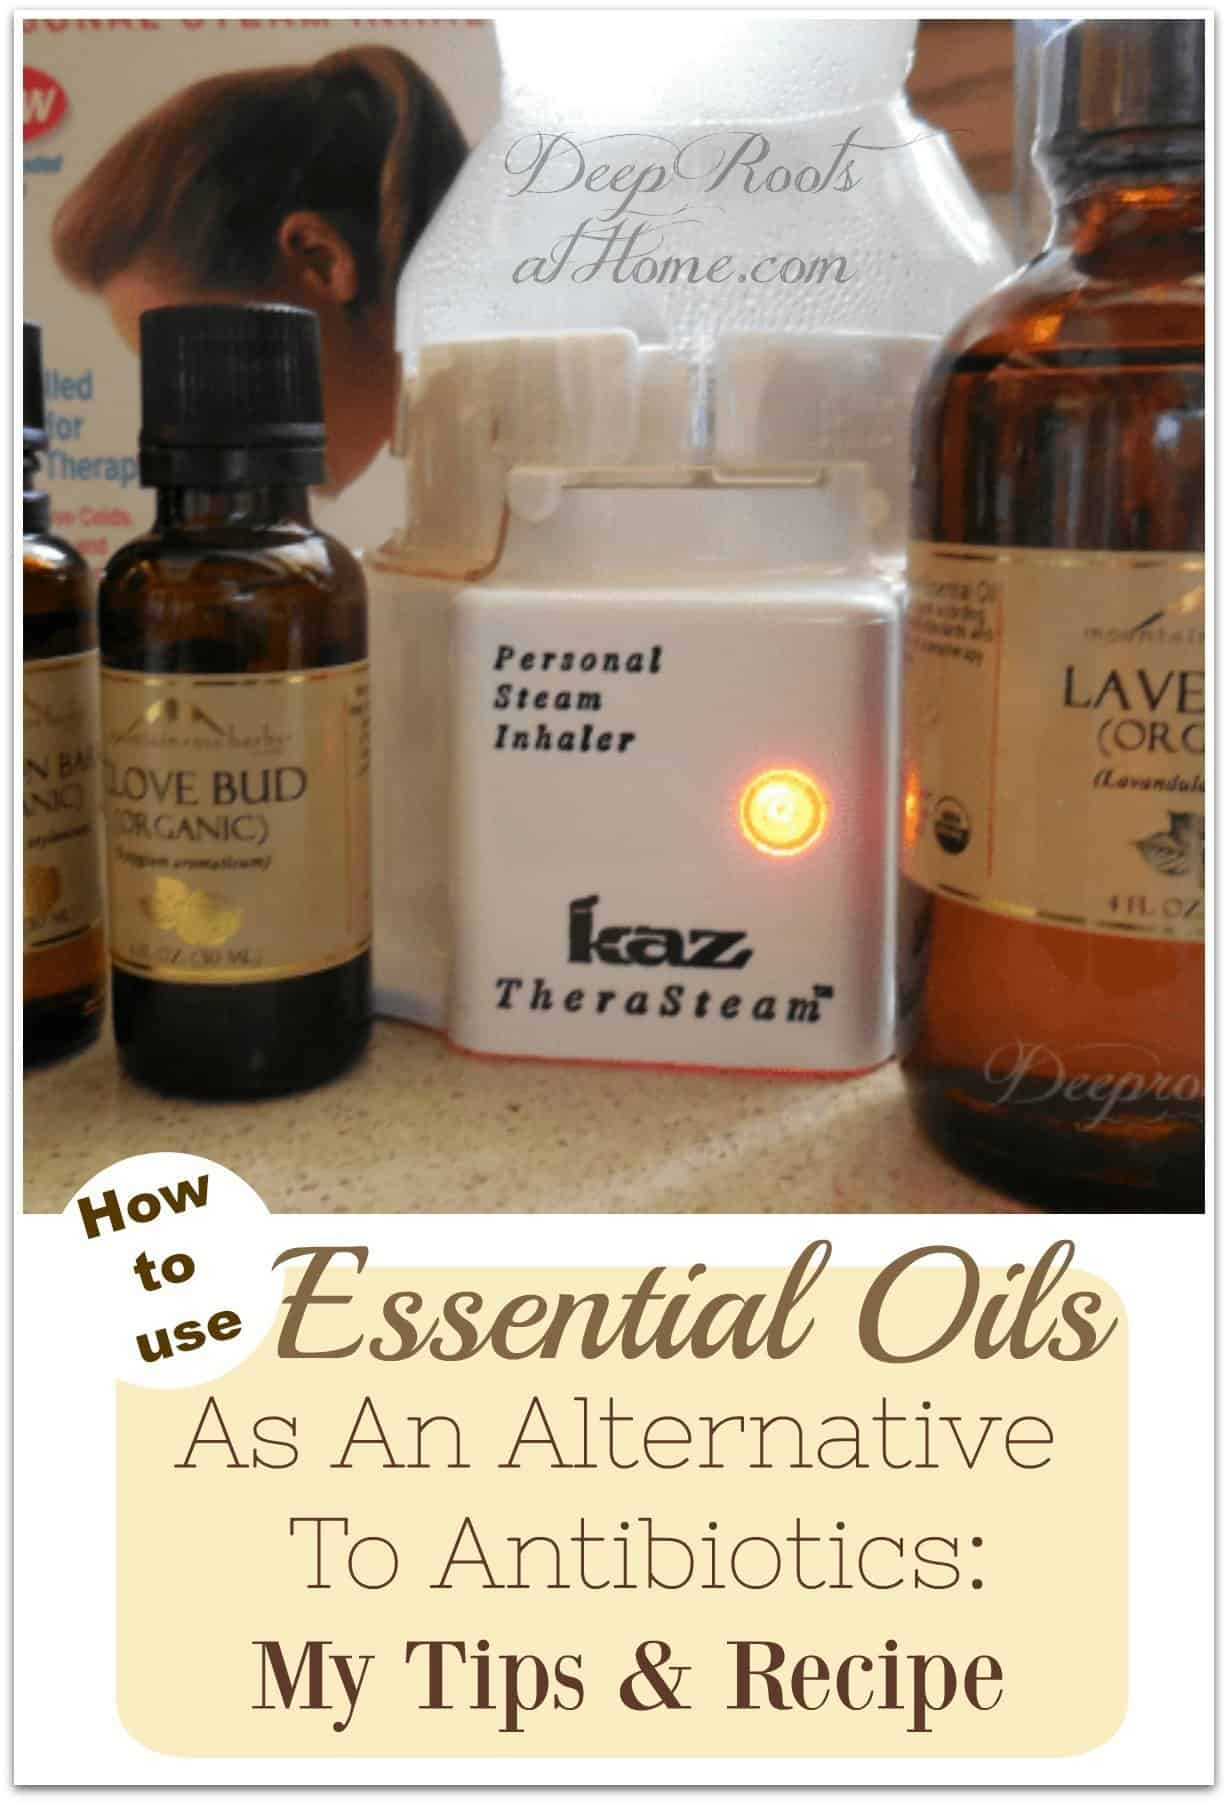 How to Use Essential Oils As Alternative To Antibiotics: Tips & My Recipe. Essential oils in my alternative antibiotic